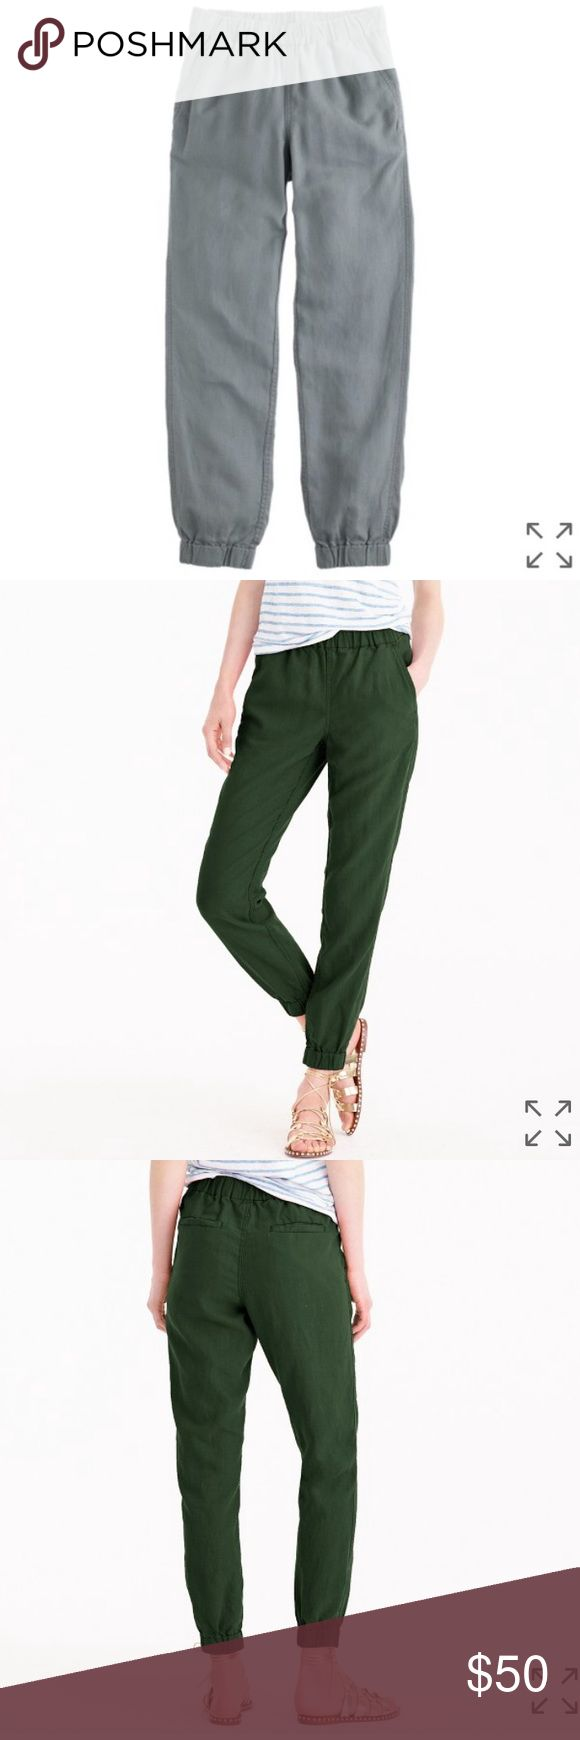 J crew seaside pants in fisherman grey Great jogger pants , linen and lycocell. Shown on model in green to show how they fit J. Crew Pants Track Pants & Joggers